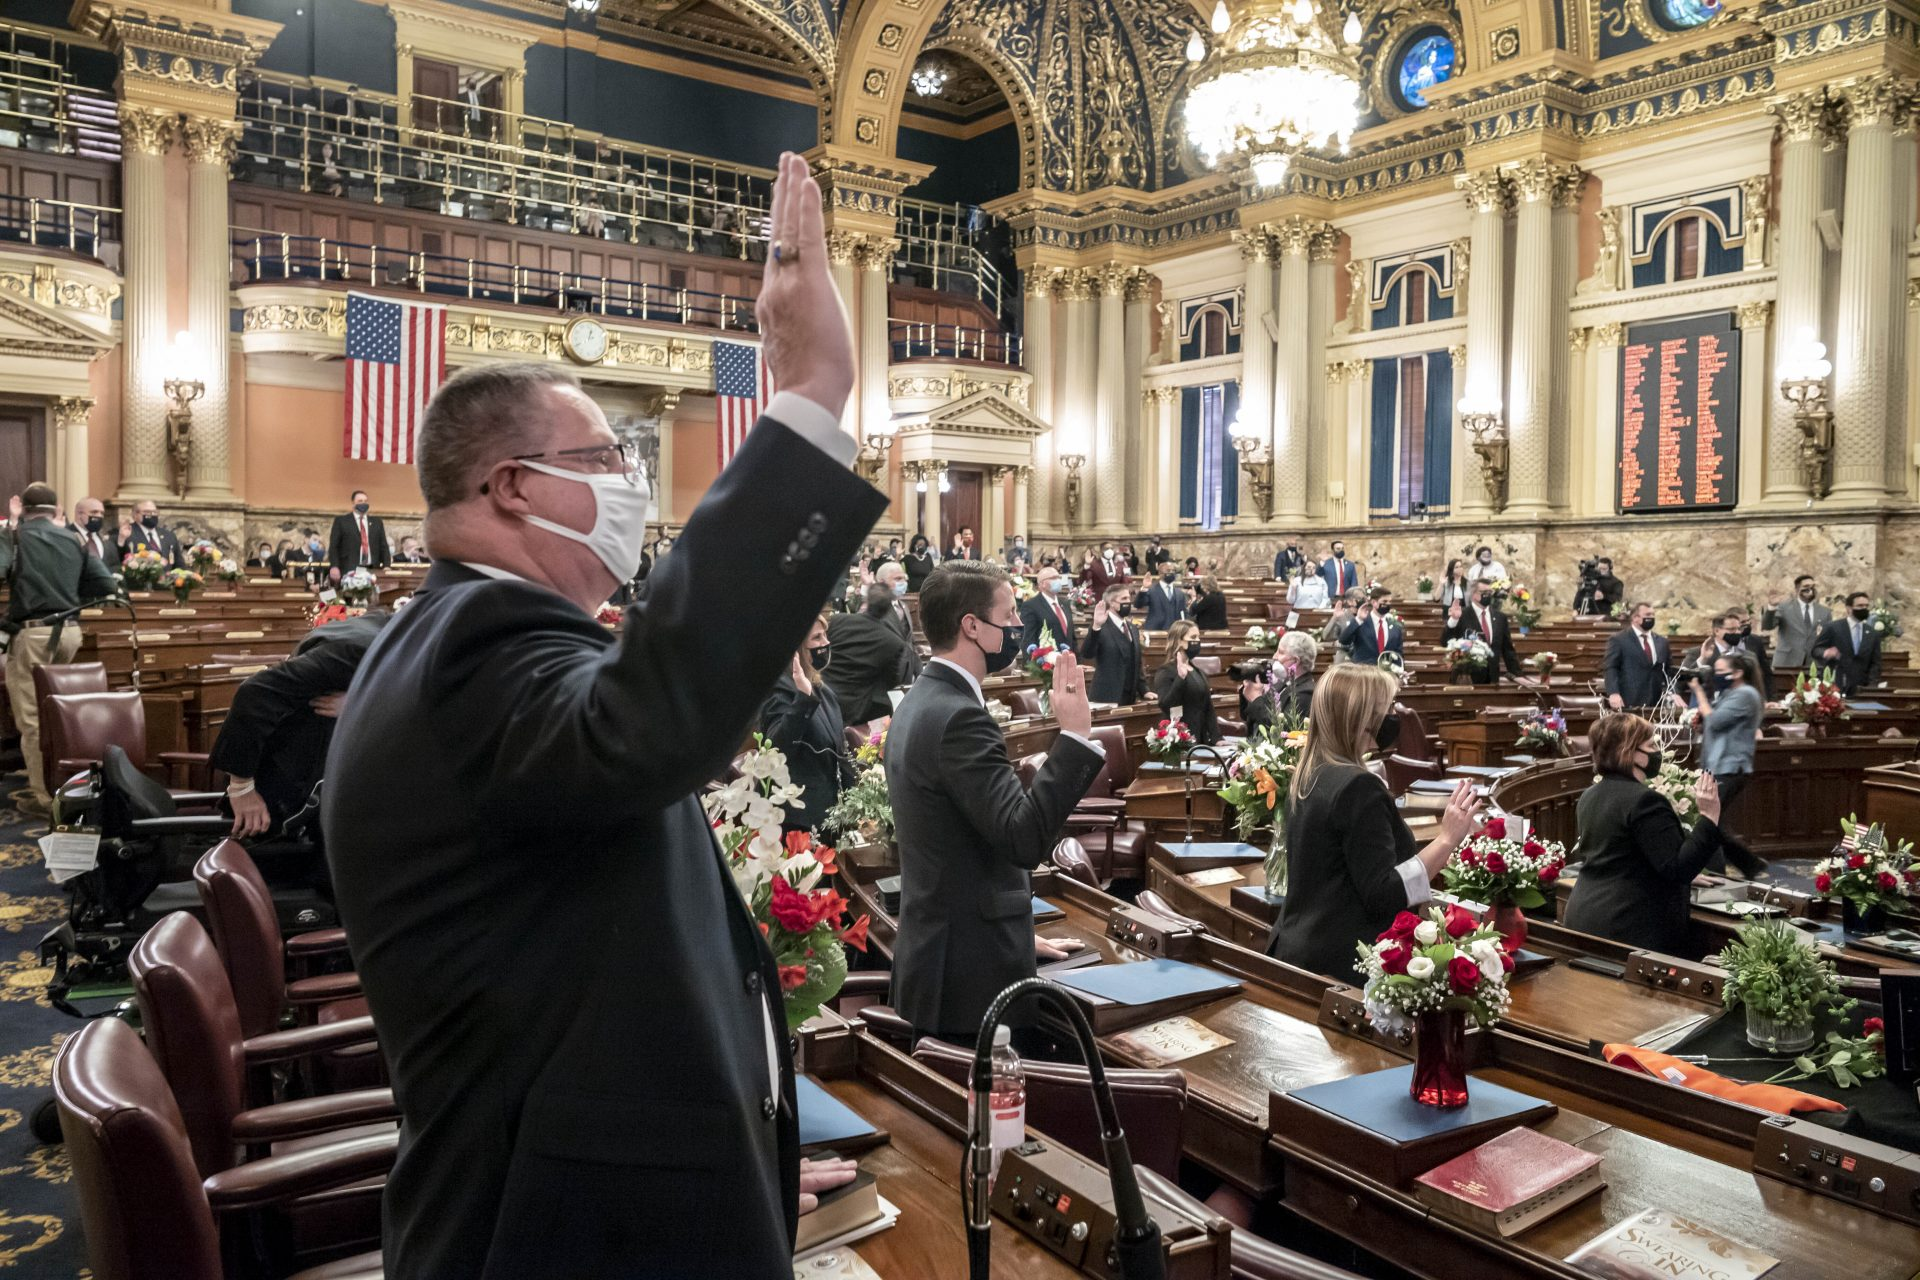 First term legislators of the Pennsylvania House of Representatives are sworn-in, Tuesday, Jan. 5, 2021, at the state Capitol in Harrisburg, Pa. The ceremony marks the convening of the 2021-2022 legislative session of the General Assembly of Pennsylvania.